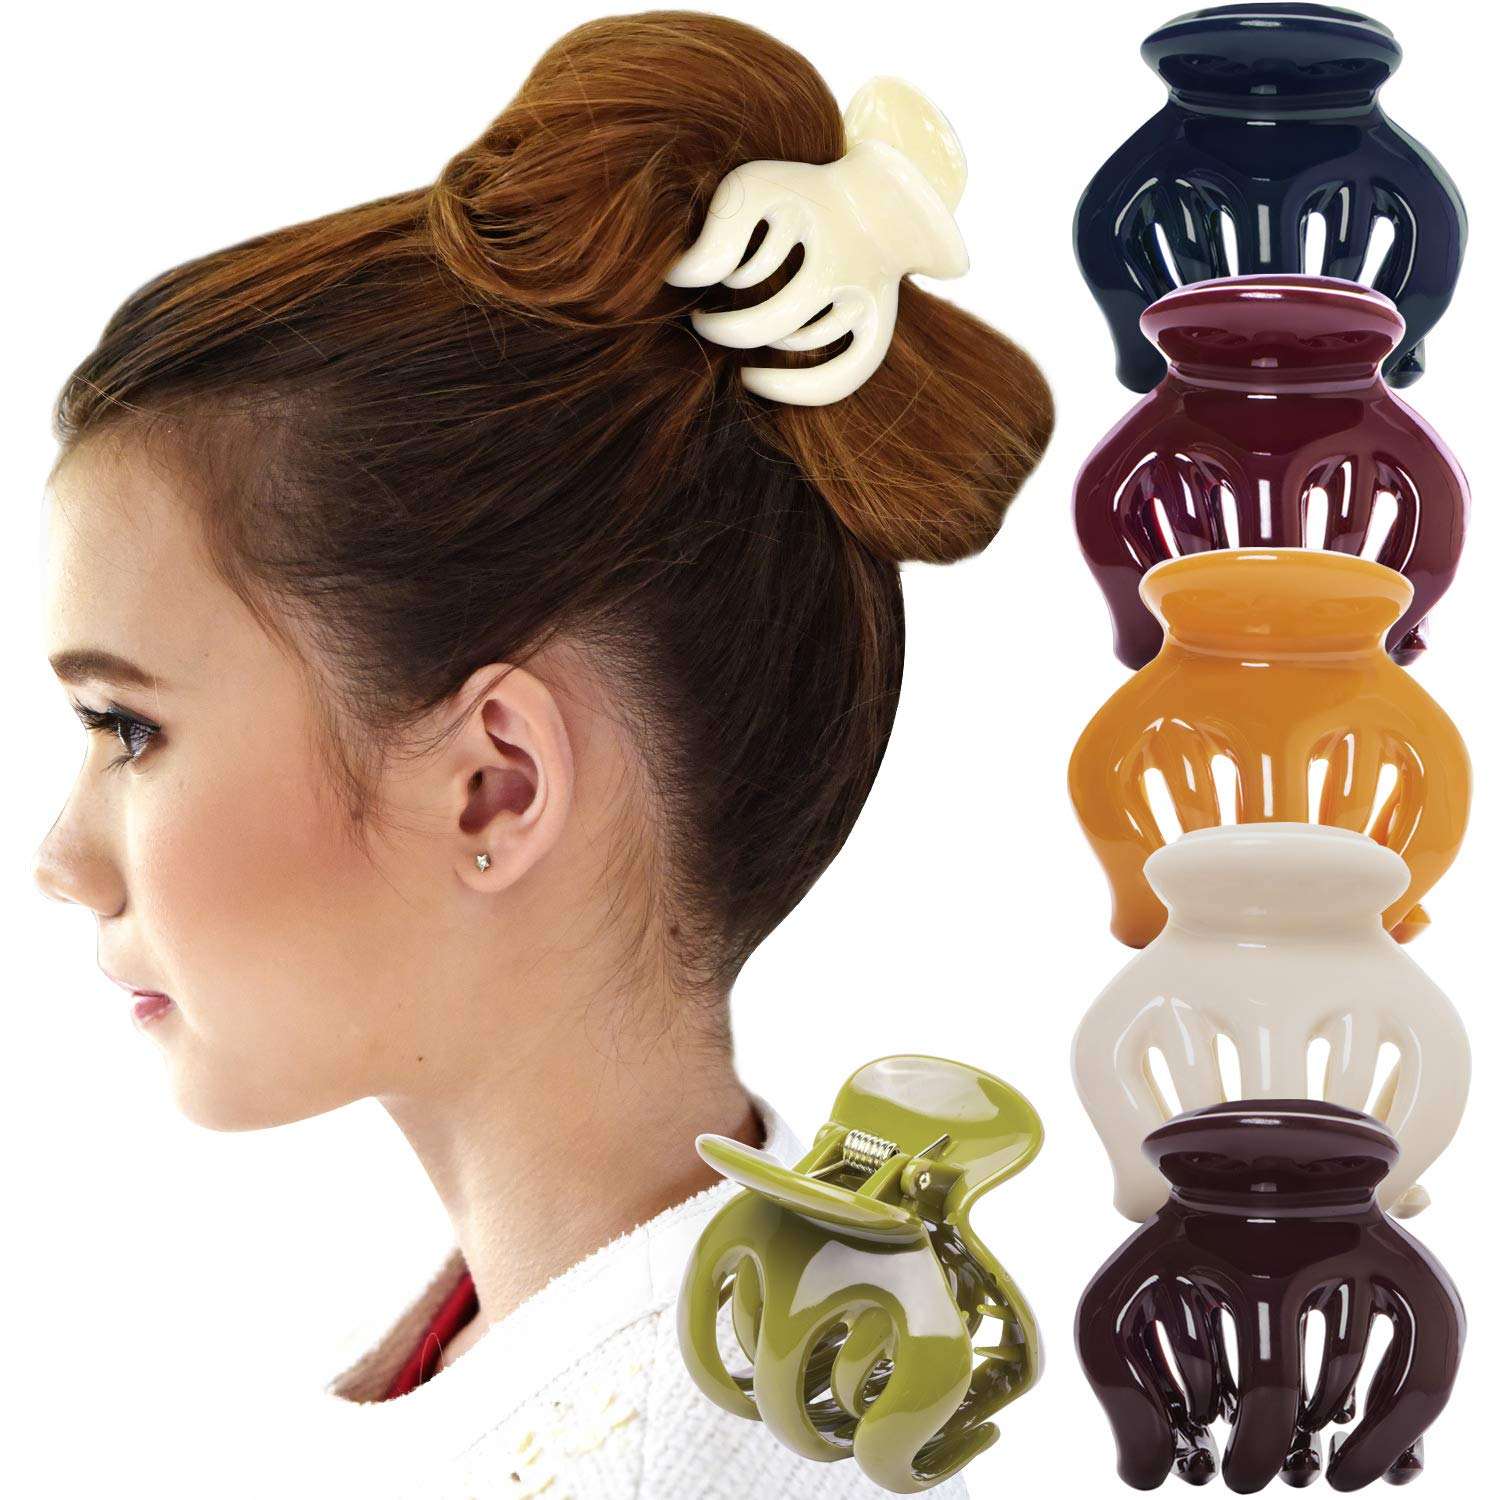 RC ROCHE ORNAMENT 6 Pcs Womens Hair Pumpkin Interlocking Teeth Slip Secure Grip Strong Solid Ladies Beauty Accessory Classic Clamp Jaw Claw Clip, Medium Classic Multicolor